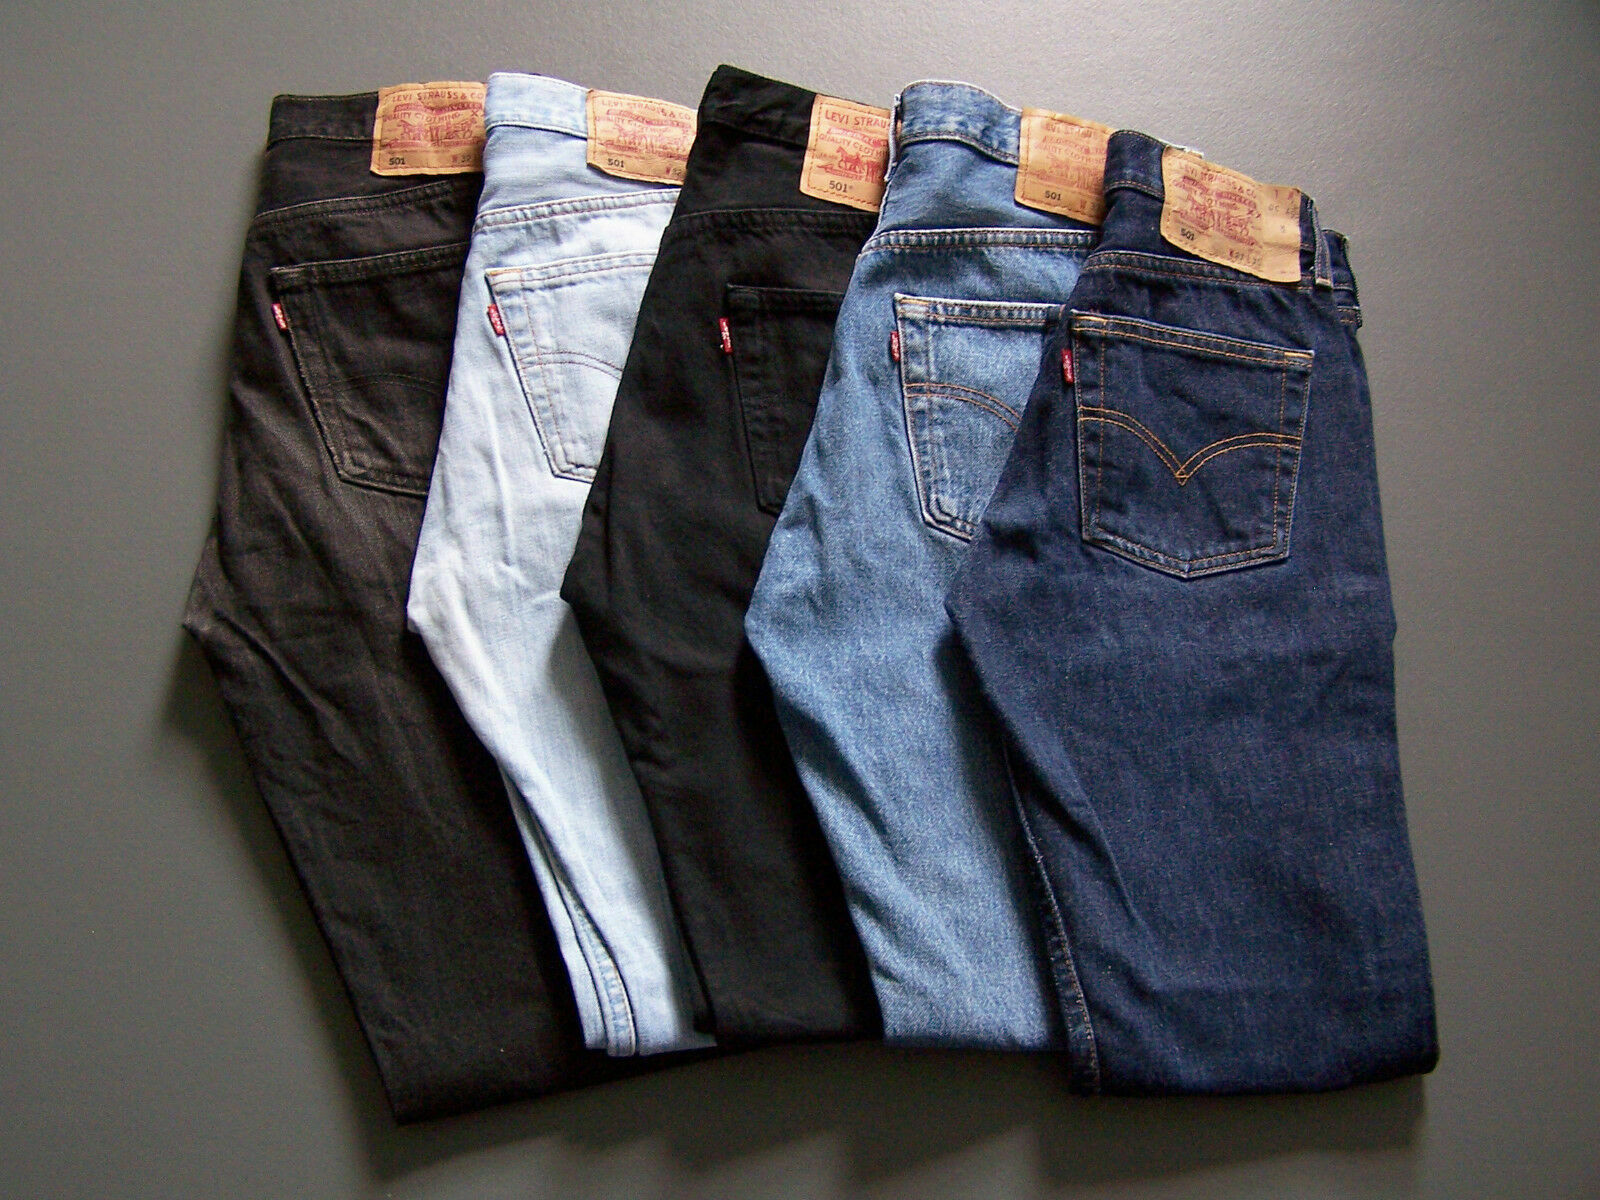 Levi's 501: Iconic Jeans of Popular Movie Characters